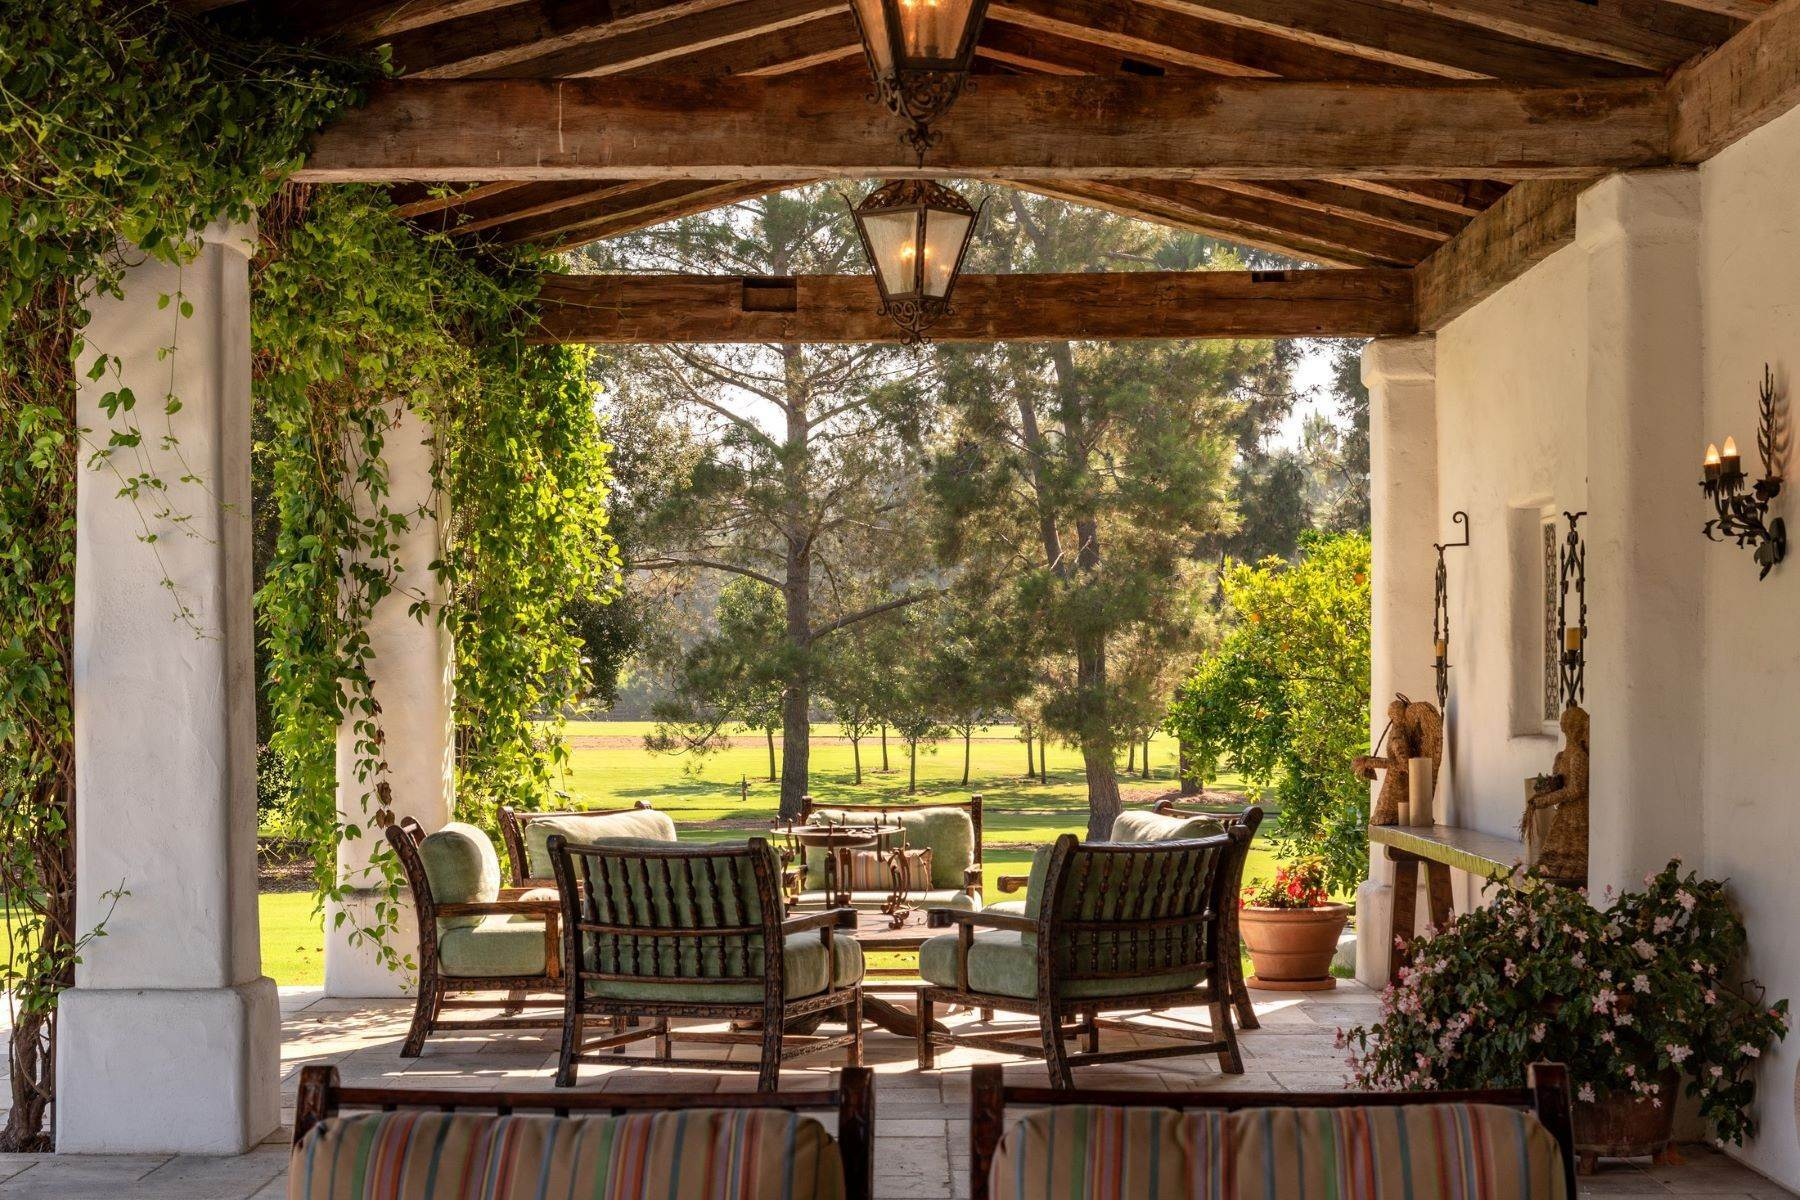 18. Farm and Ranch Properties for Sale at 16401 Calle Feliz, Rancho Santa Fe, Ca, 92067 16401 Calle Feliz Rancho Santa Fe, California 92067 United States